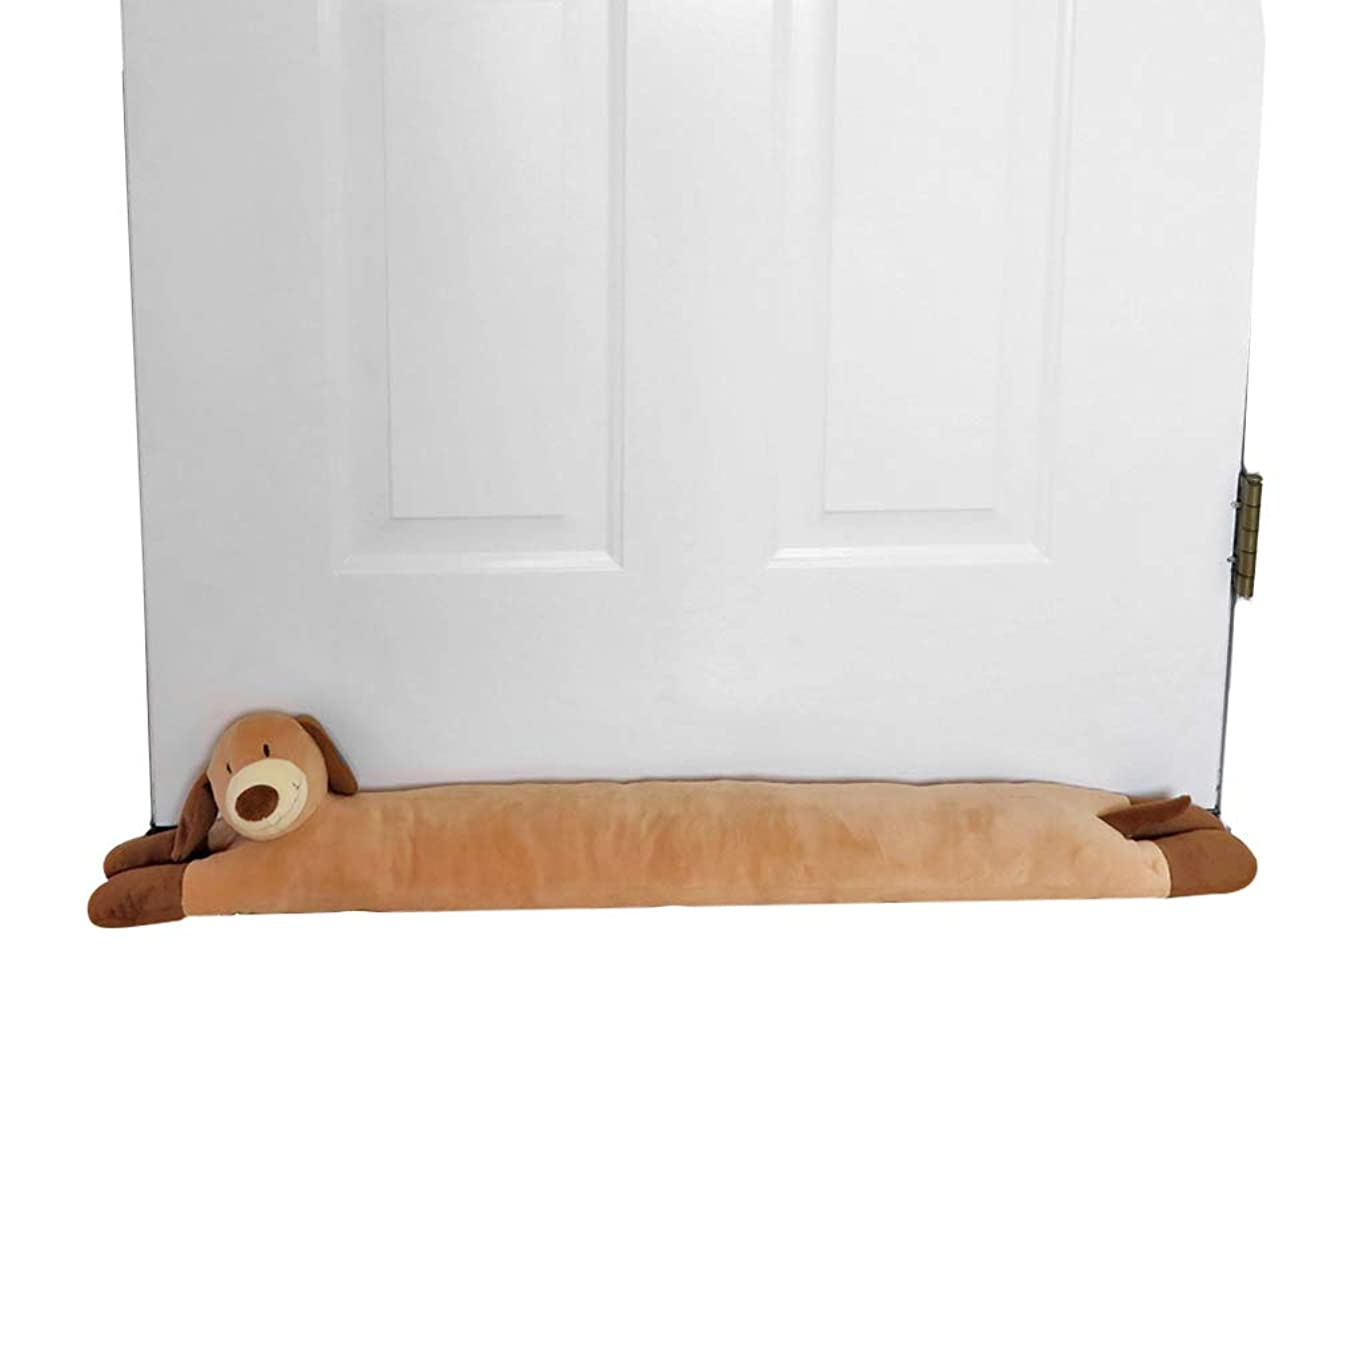 Evelots Dog Door Window Draft Stopper-37 -No Noise,Bug,Insect-Keep Heat in